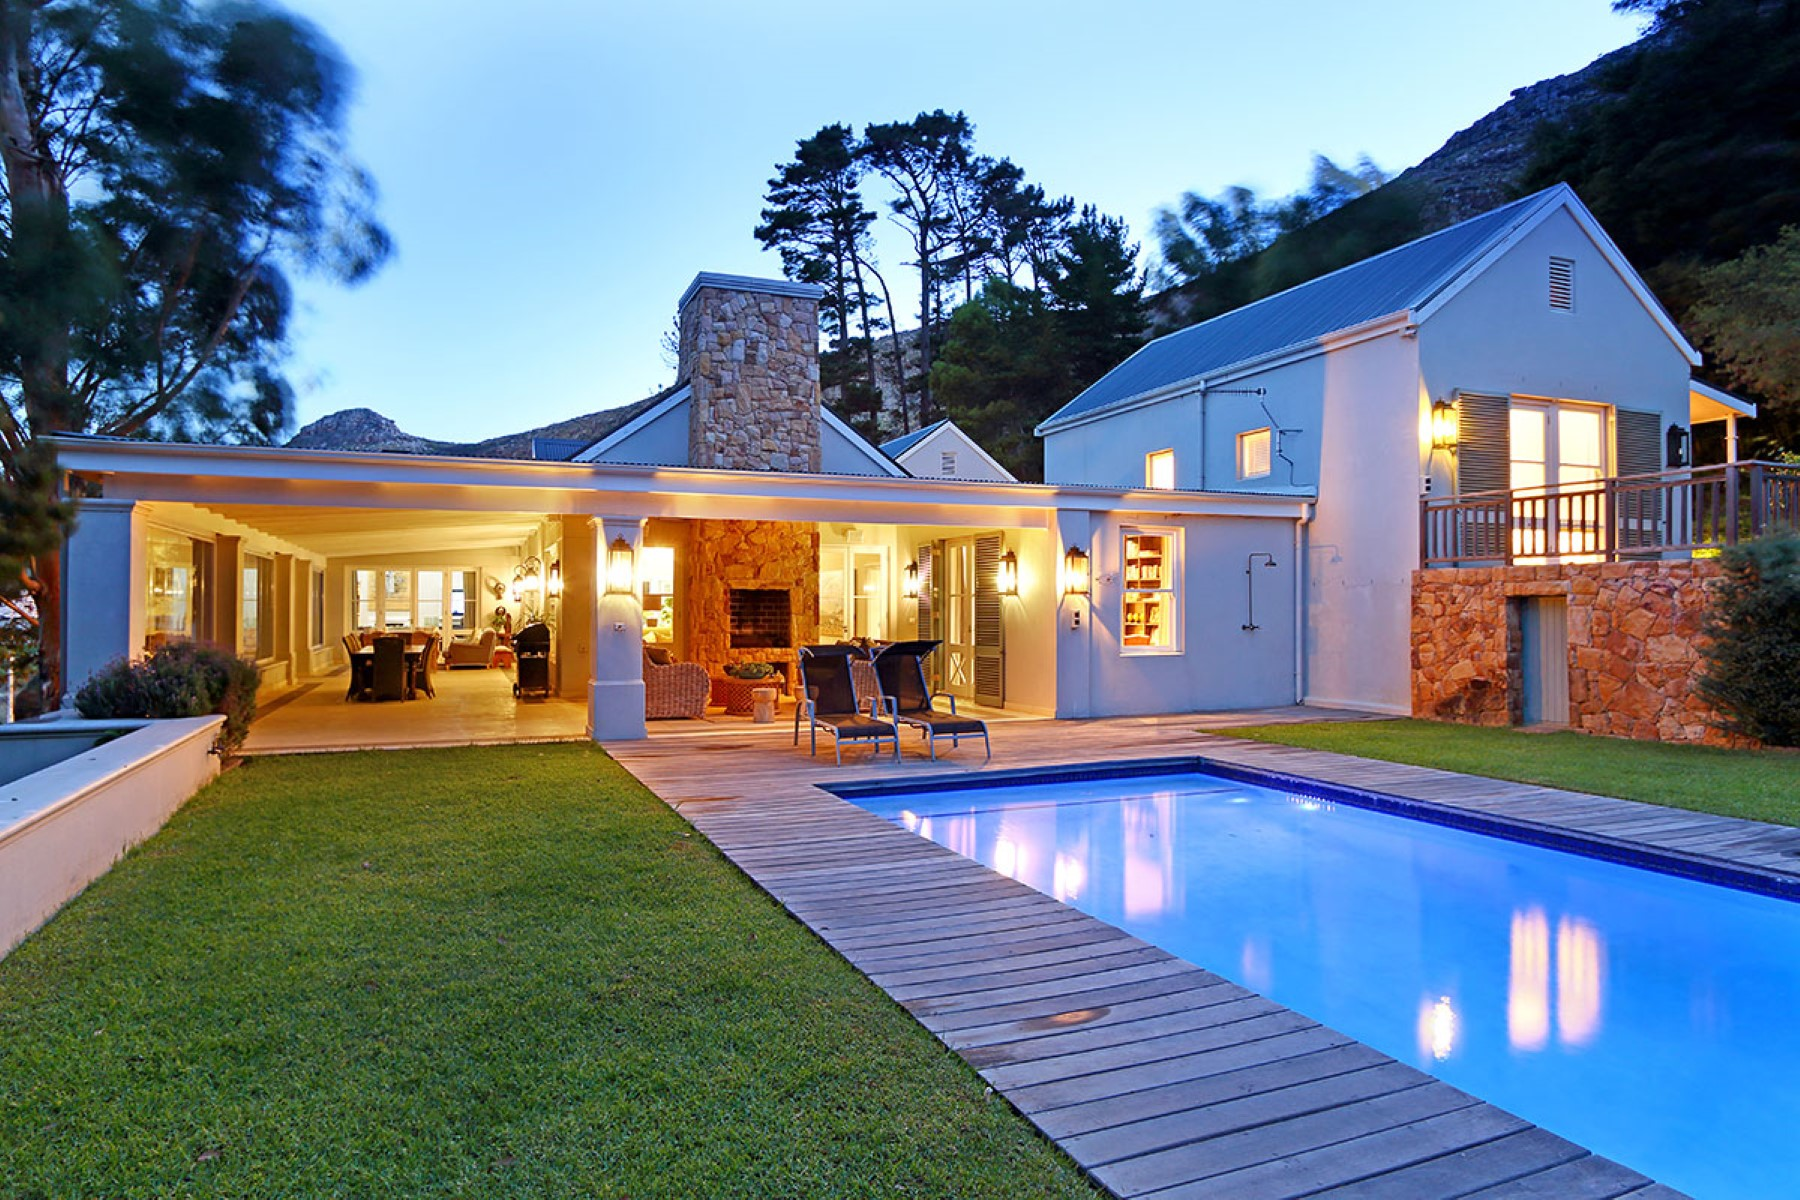 Single Family Home for Sale at Cape Town Cape Town, Western Cape, 7945 South Africa